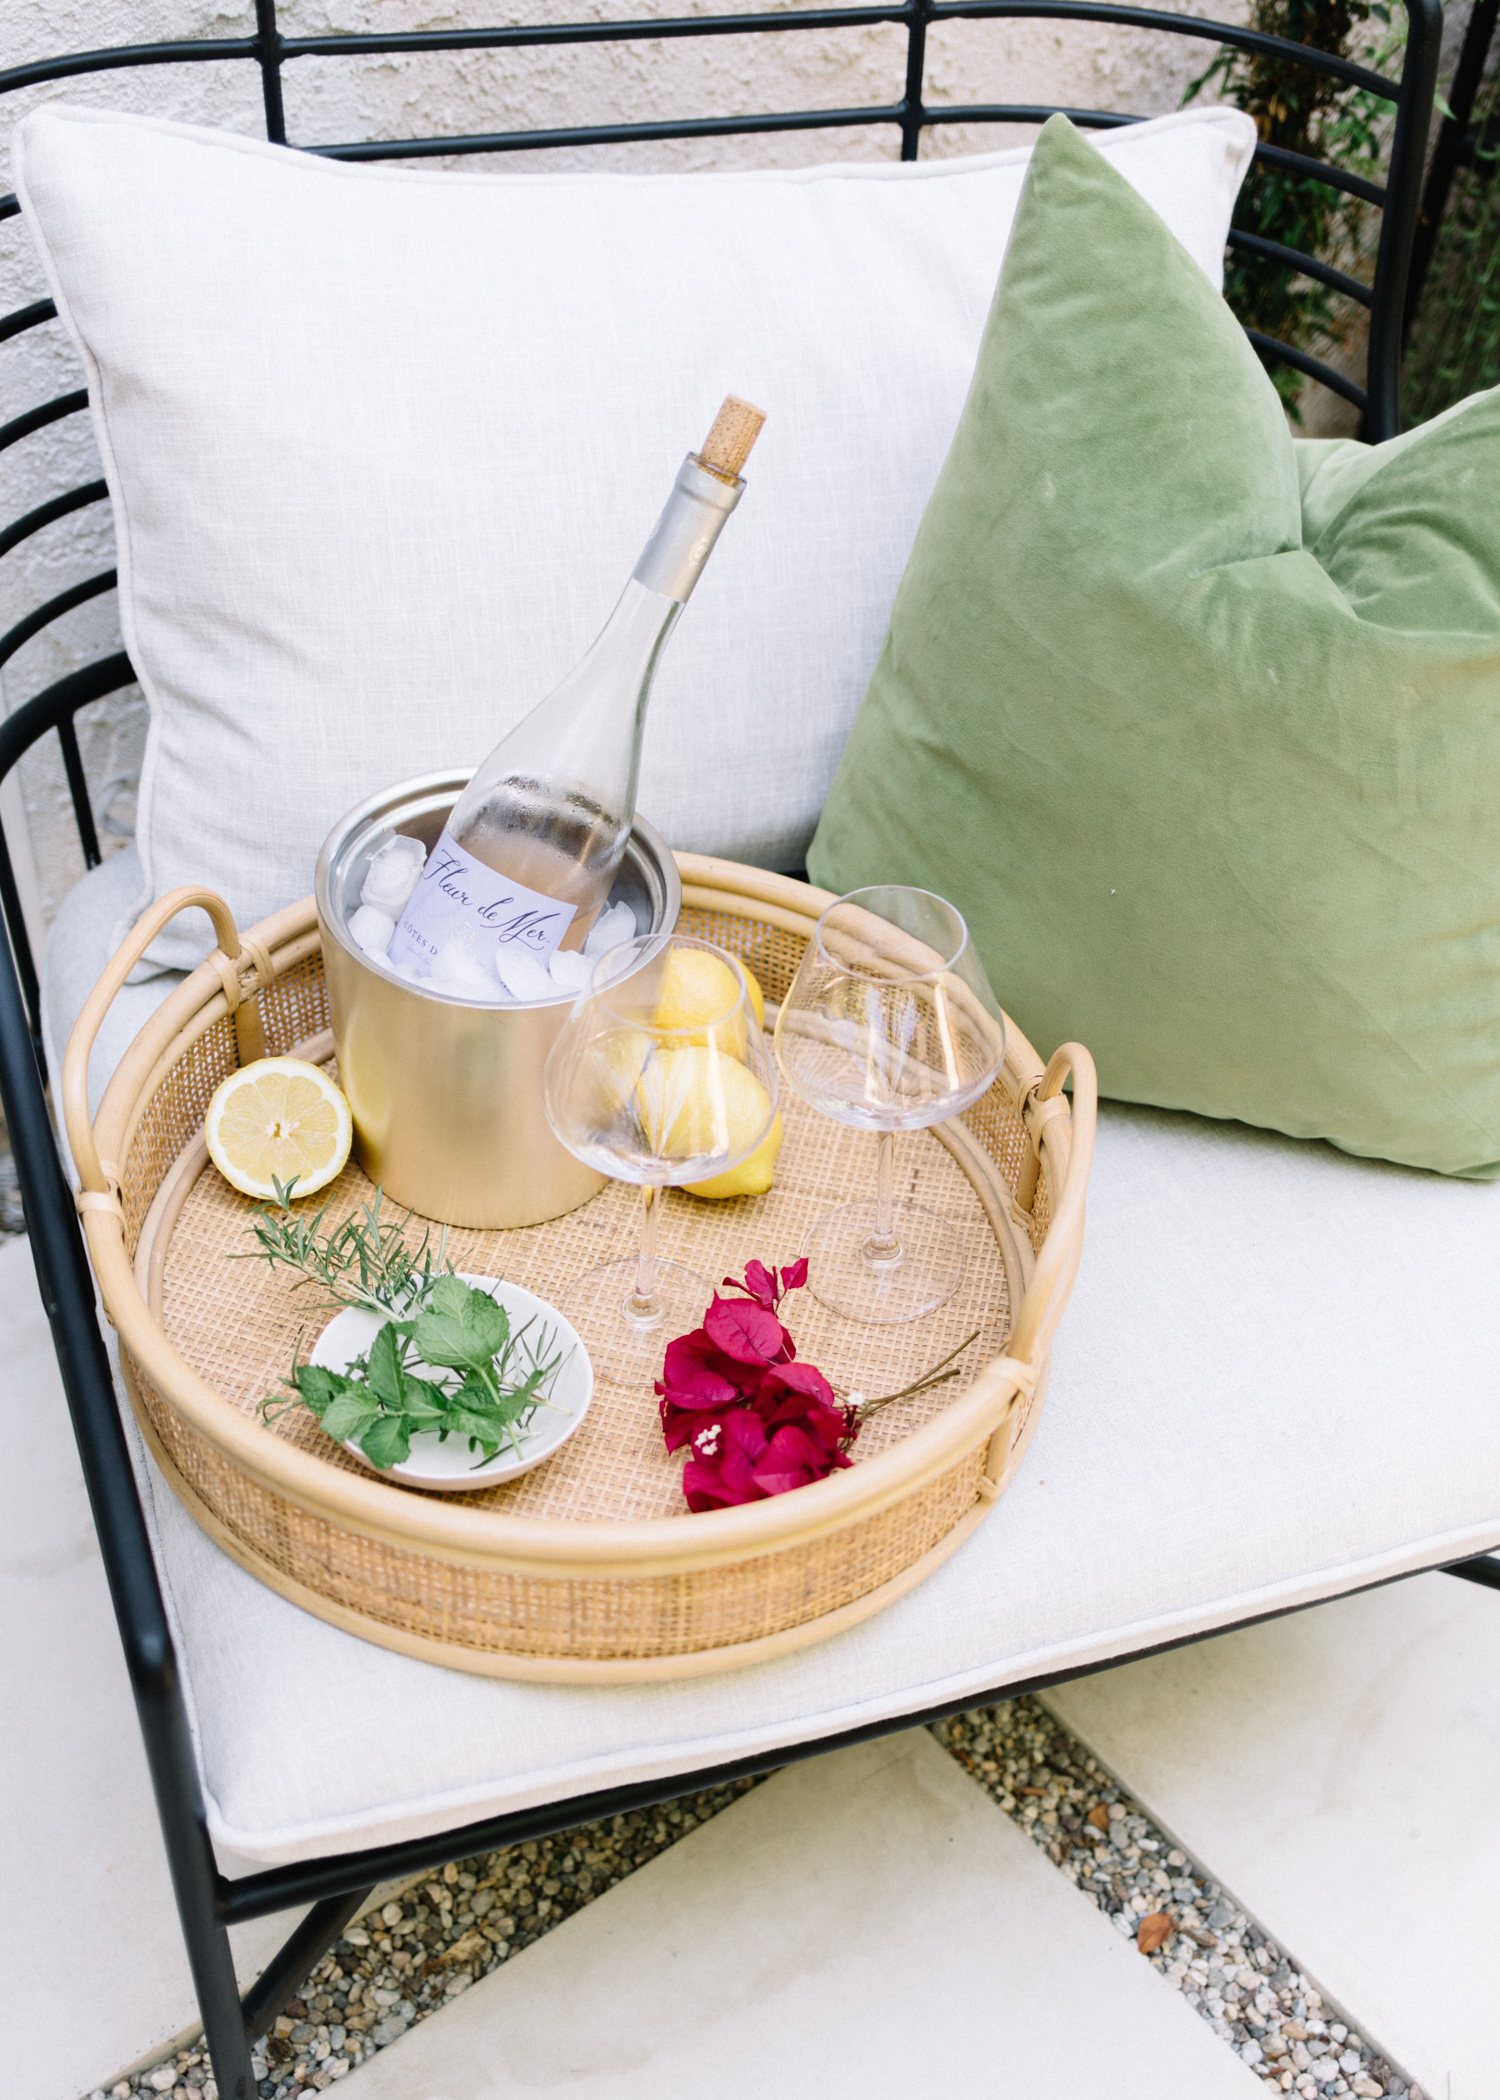 5 Ways to Spruce Up Your Patio on a Budget For Summer | A Fabulous Fete